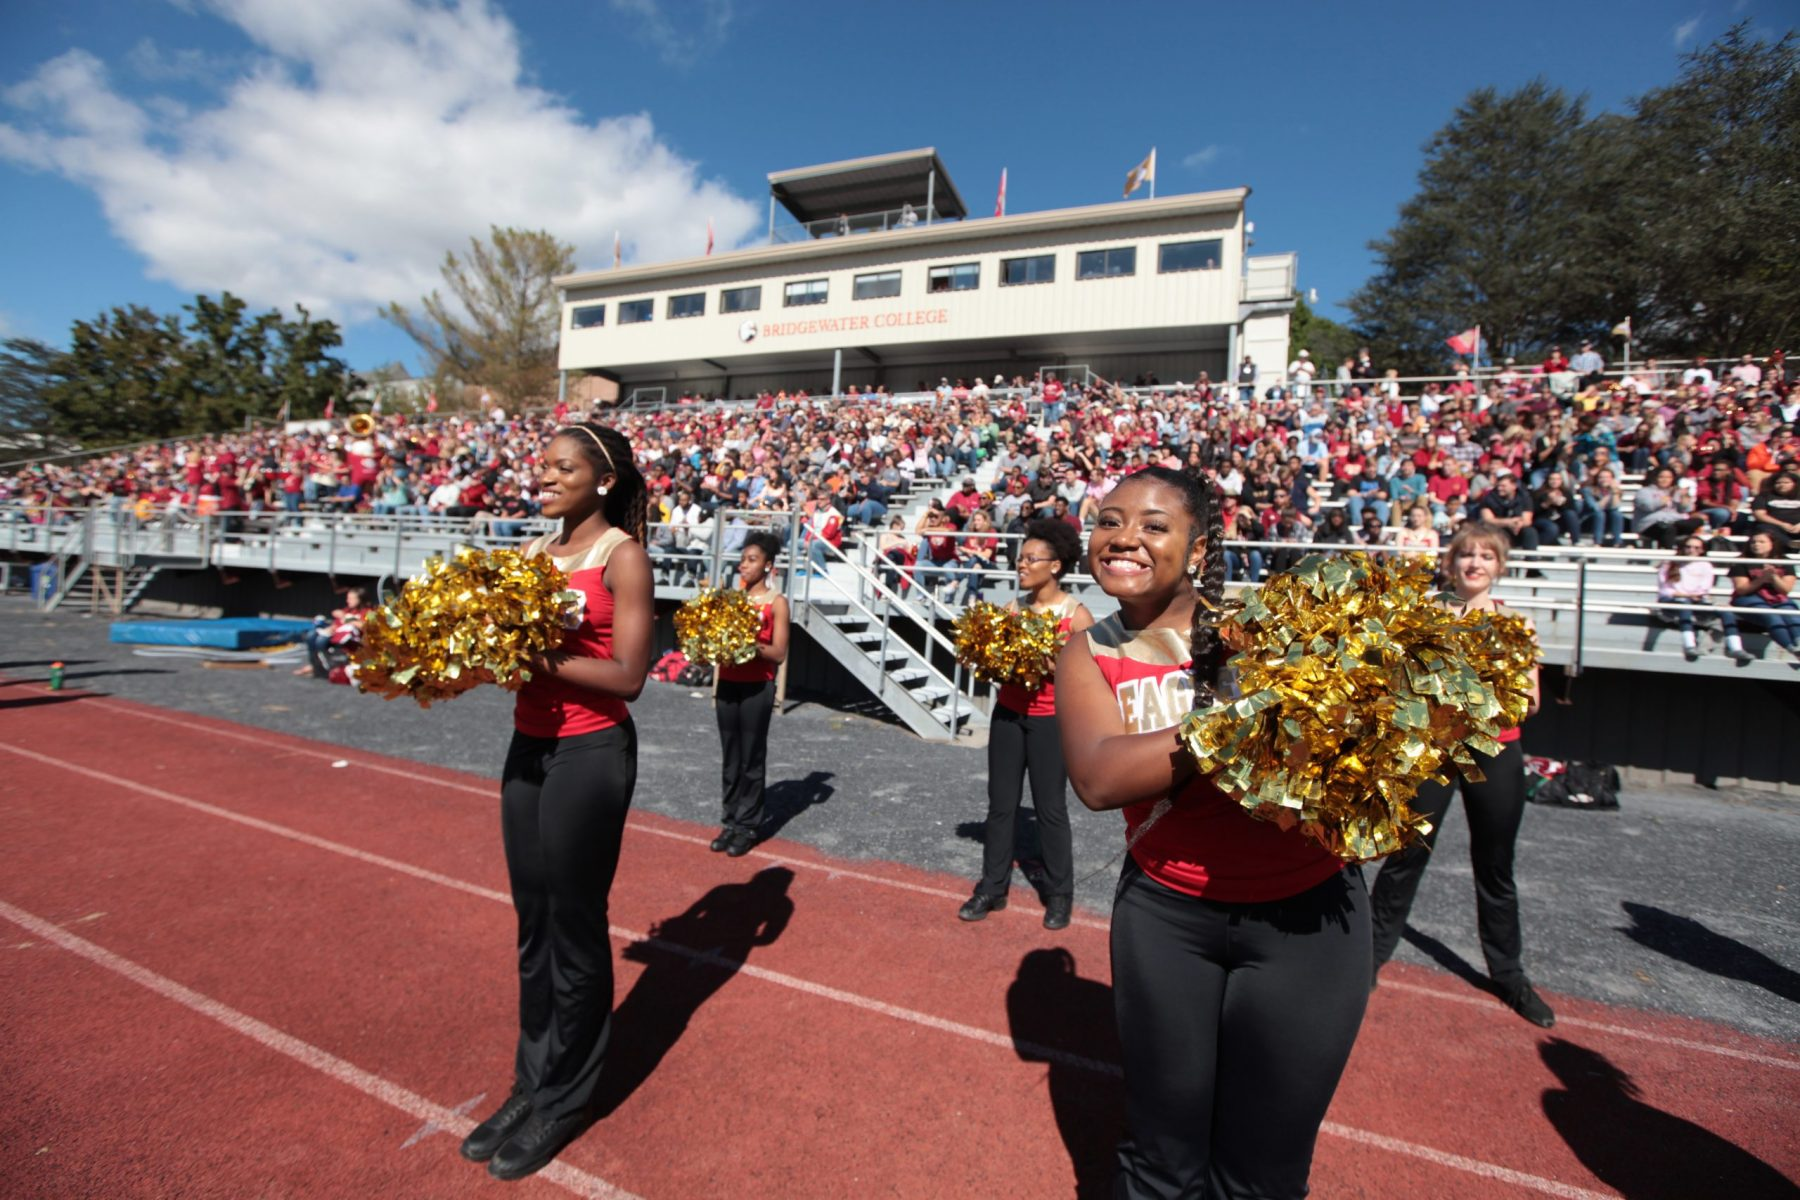 Cheerleaders stand in front of crowded stands